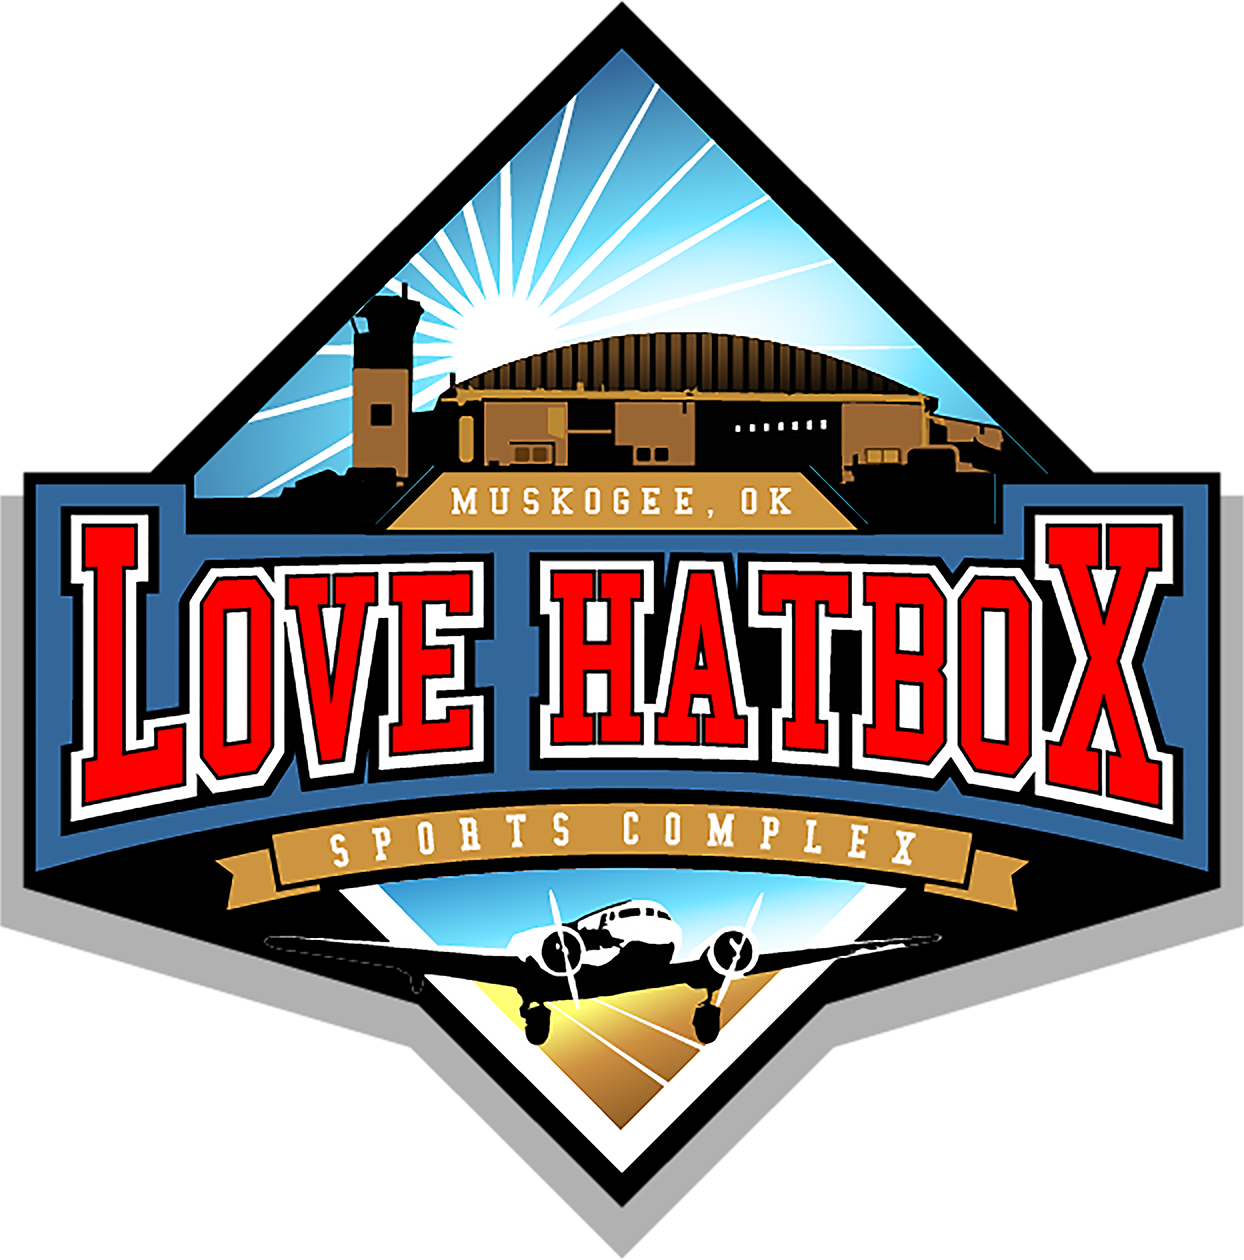 love hatbox sports complex logo